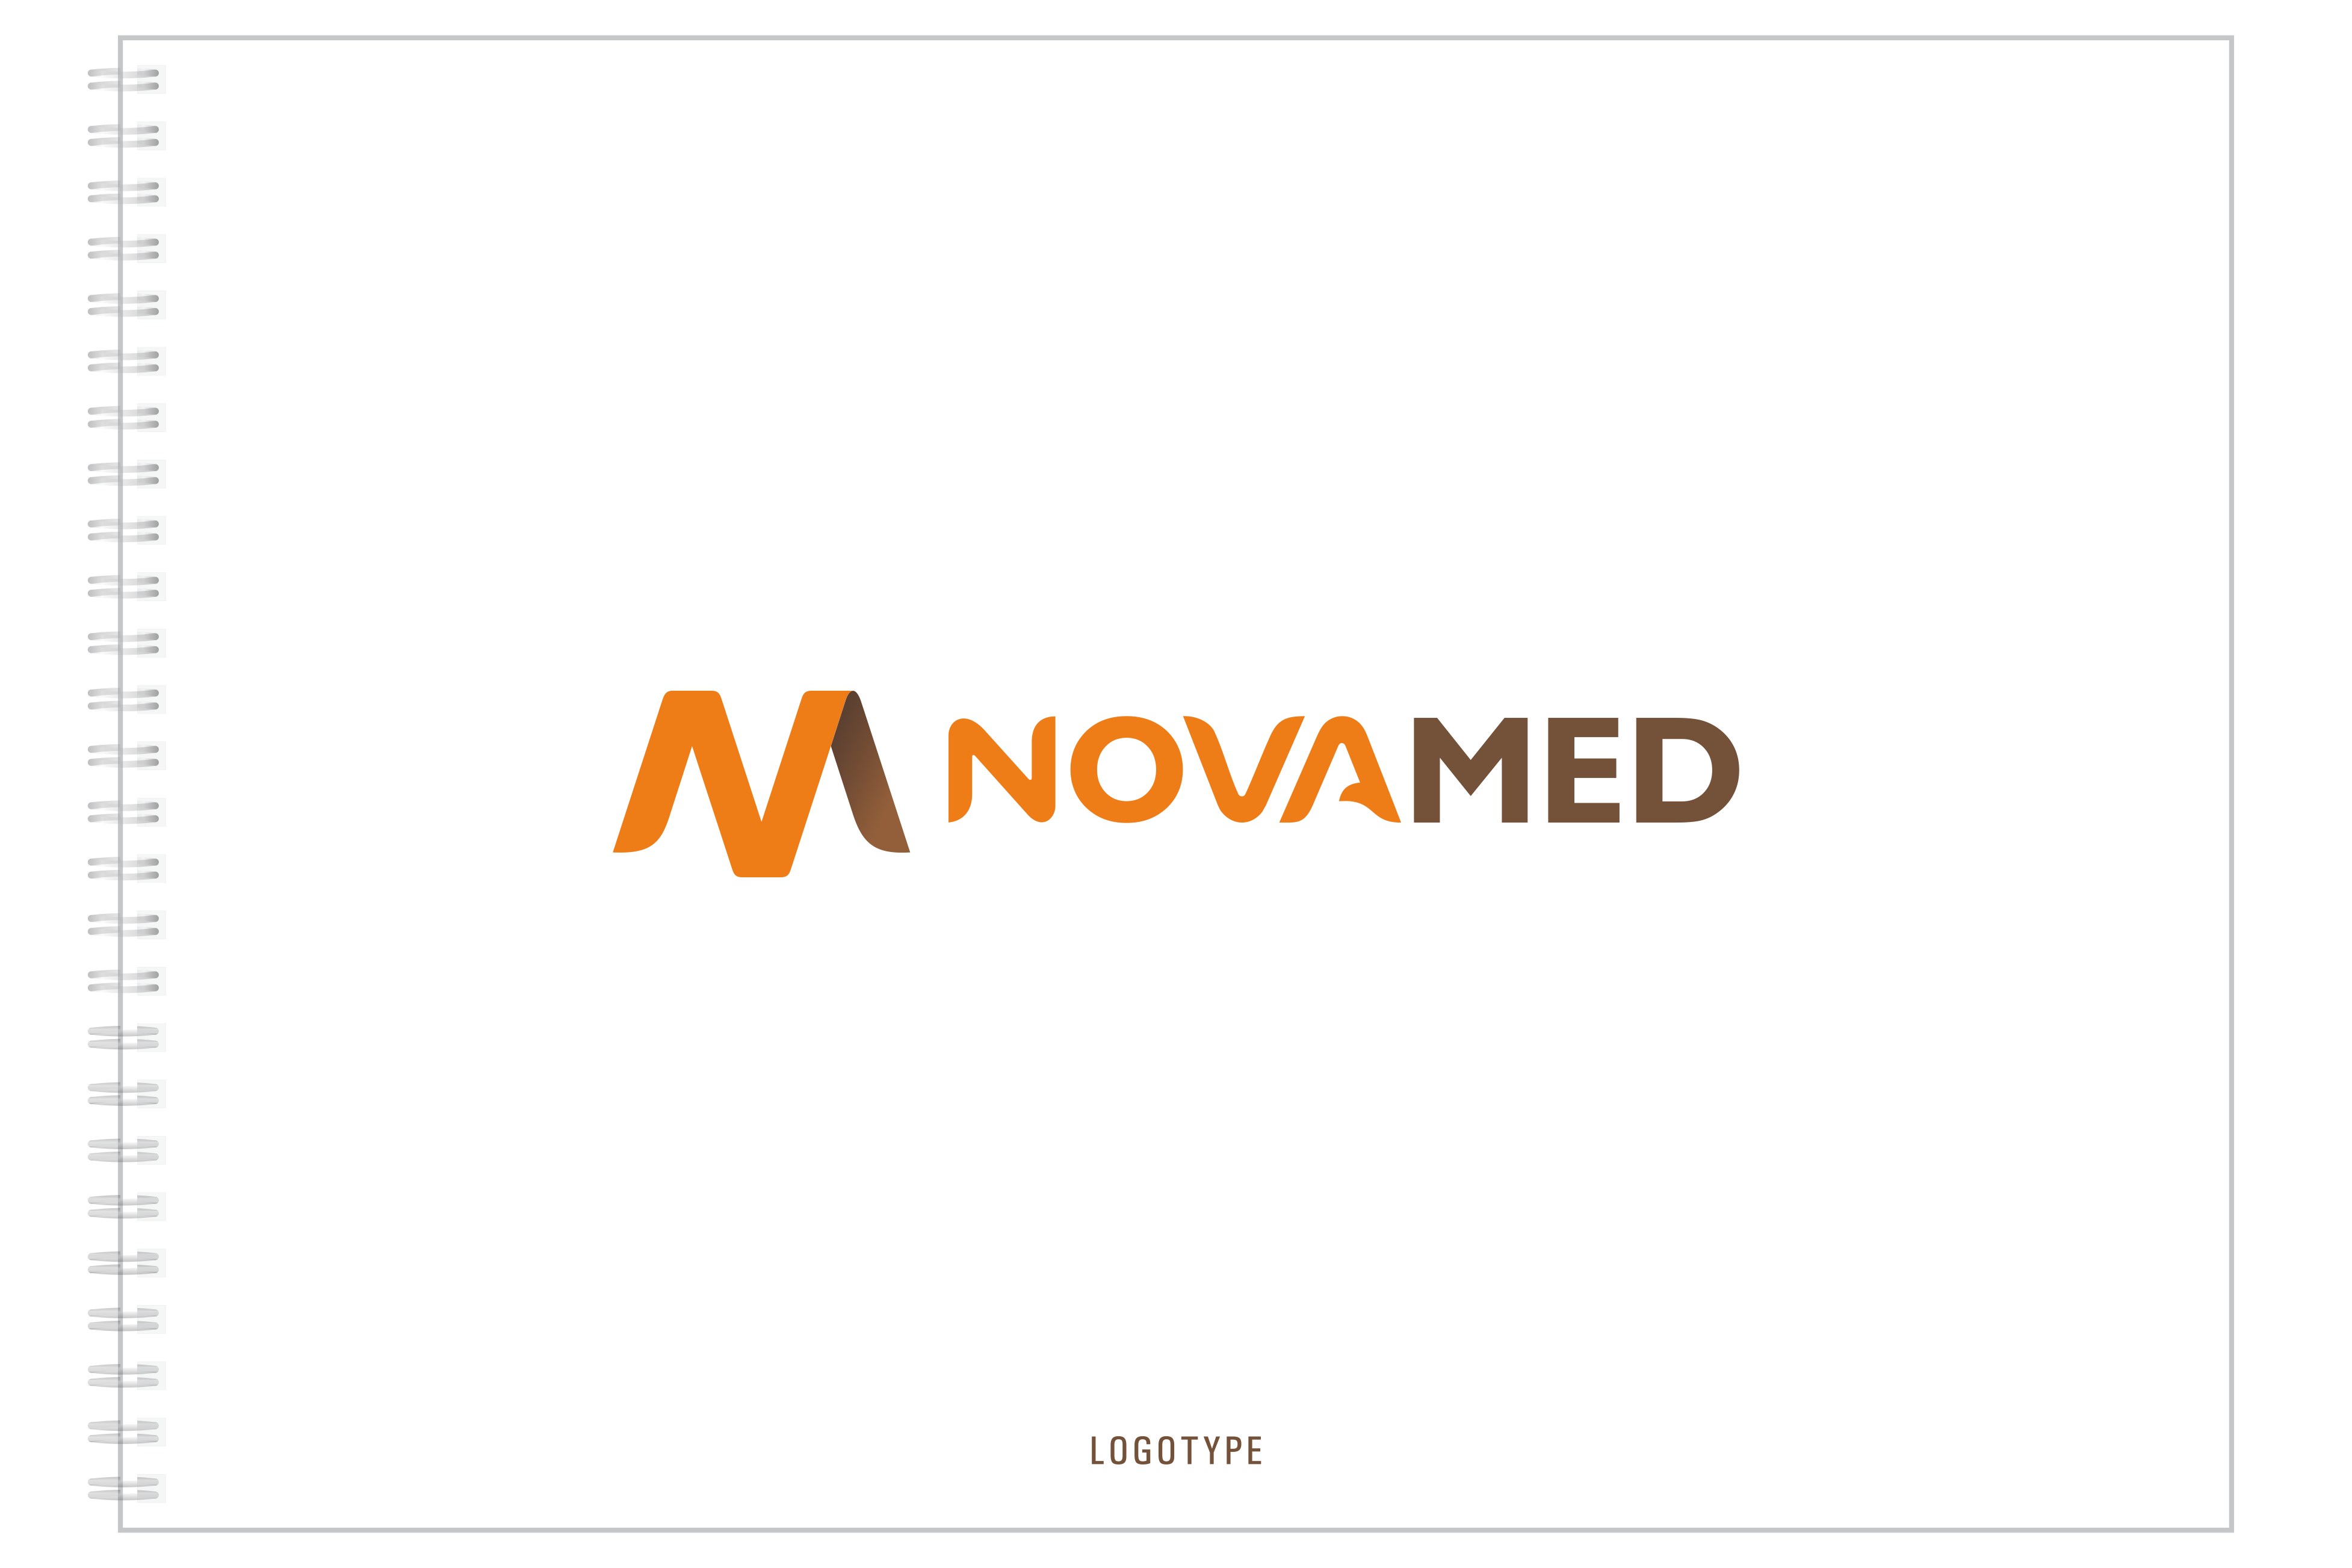 http://imprint.md/img/client/novamed/book/01_brandbook_novamed_final.png